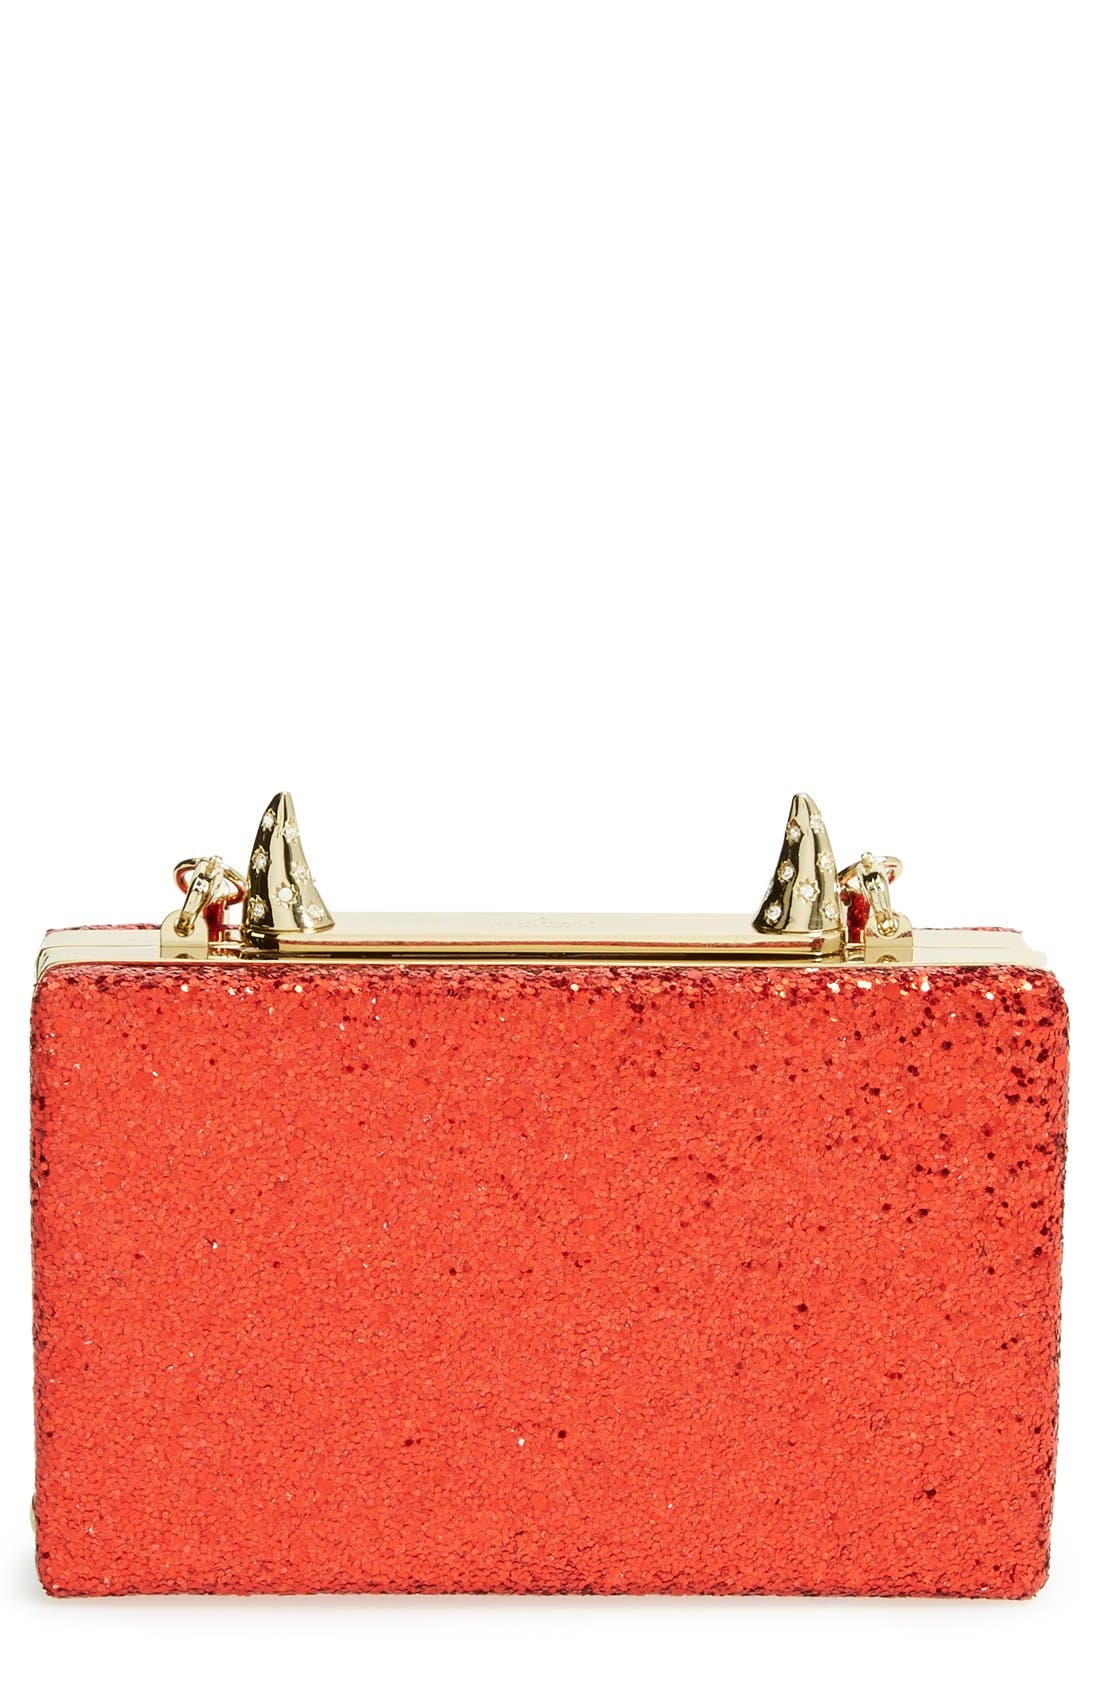 Alternate Image 1 Selected - kate spade new york 'place your bets - ravi' box clutch